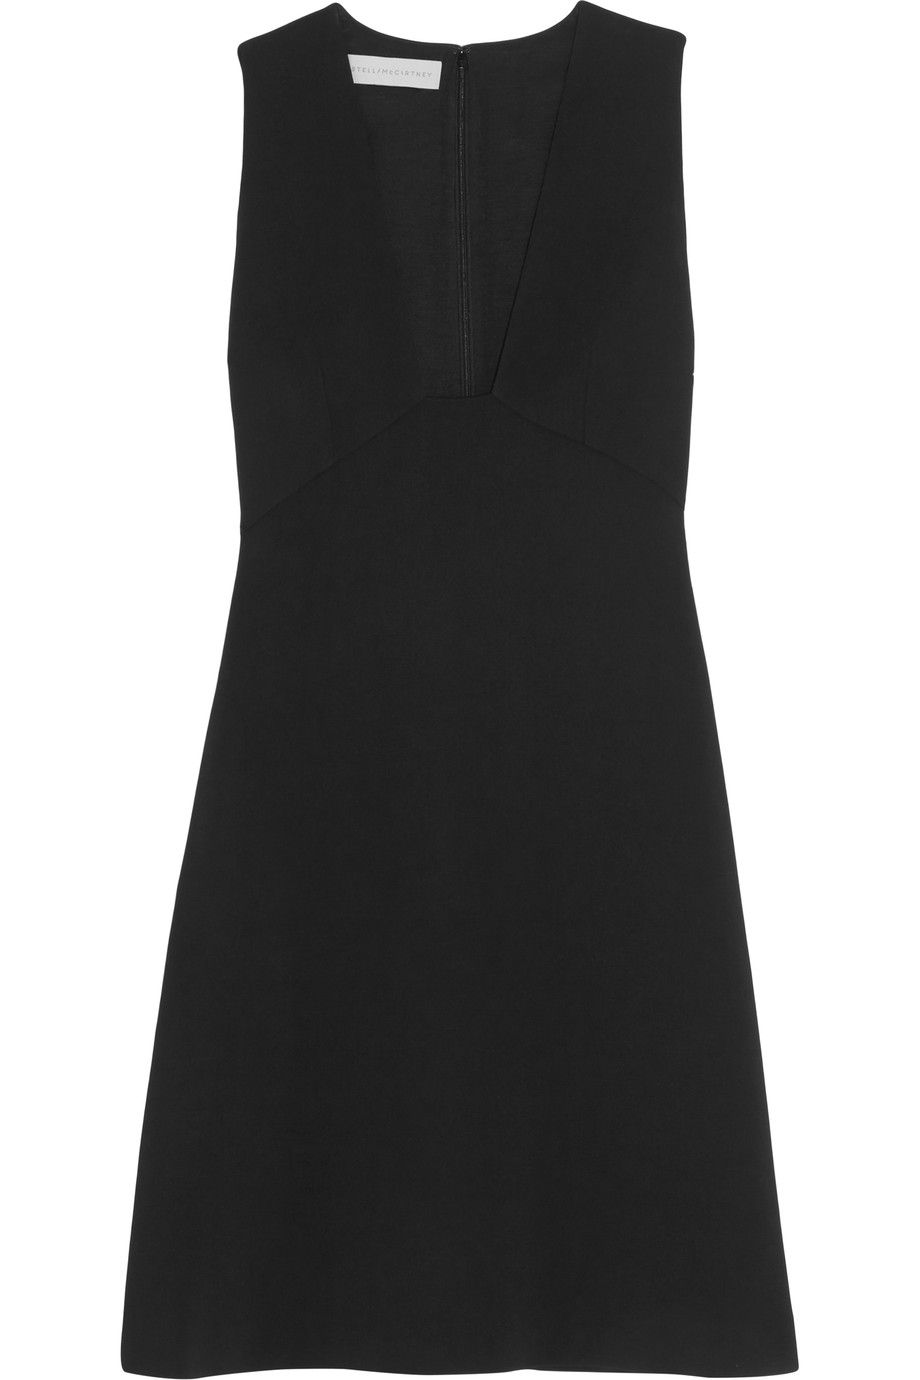 Sleeveless crêpe dress Stella McCartney Clearance Big Sale Huge Surprise Online Perfect Sale Online Quality Free Shipping Low Price o2D2Apr